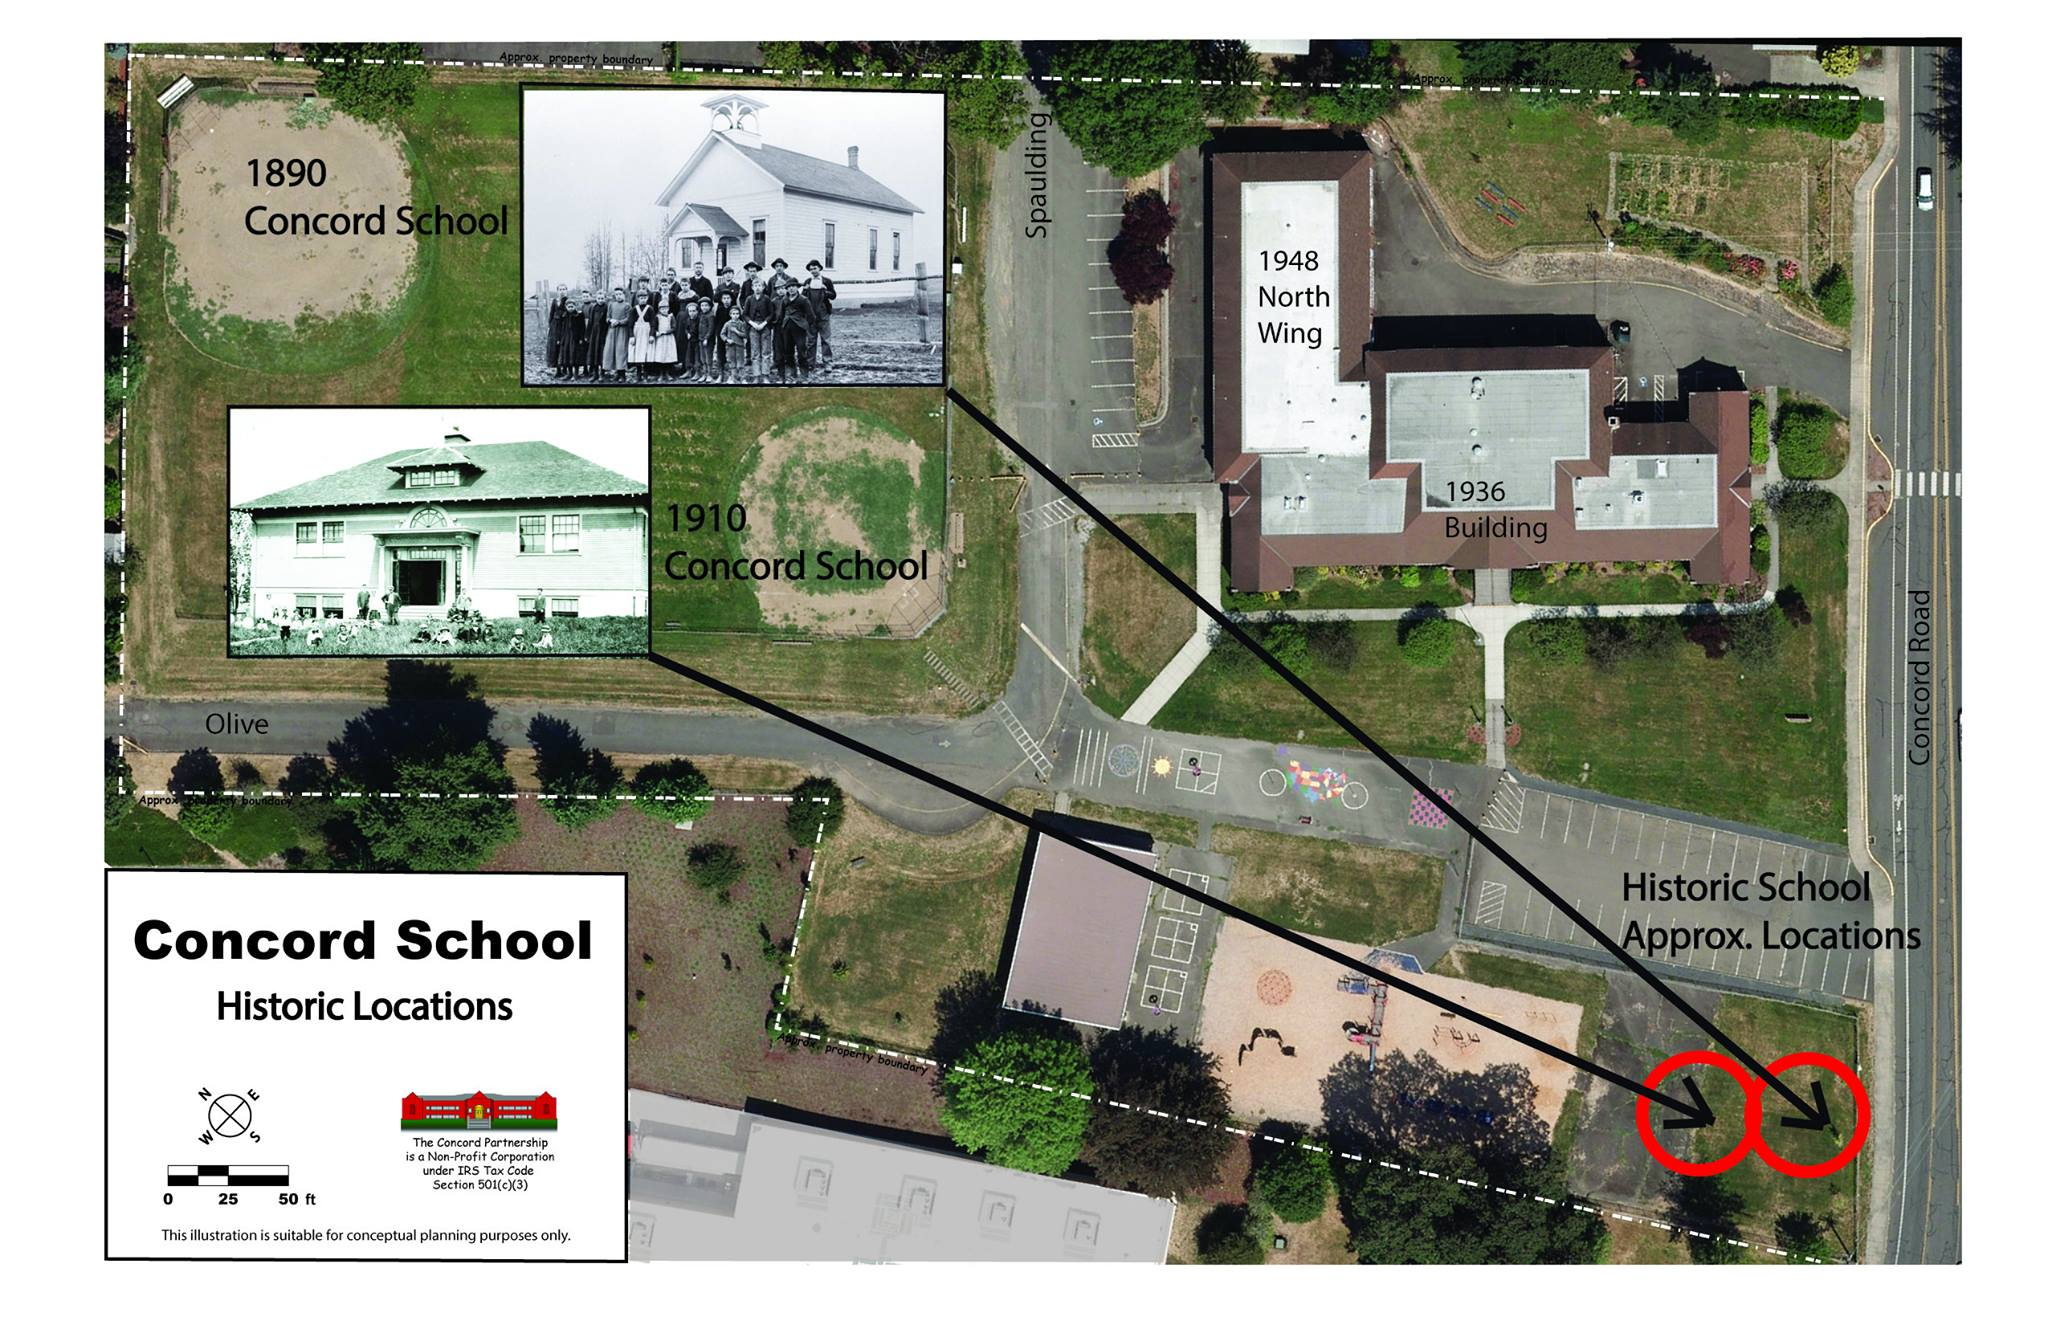 Aerial photo of Concord School with inset photos of the 18090 and 1910 buildings showing their original locations